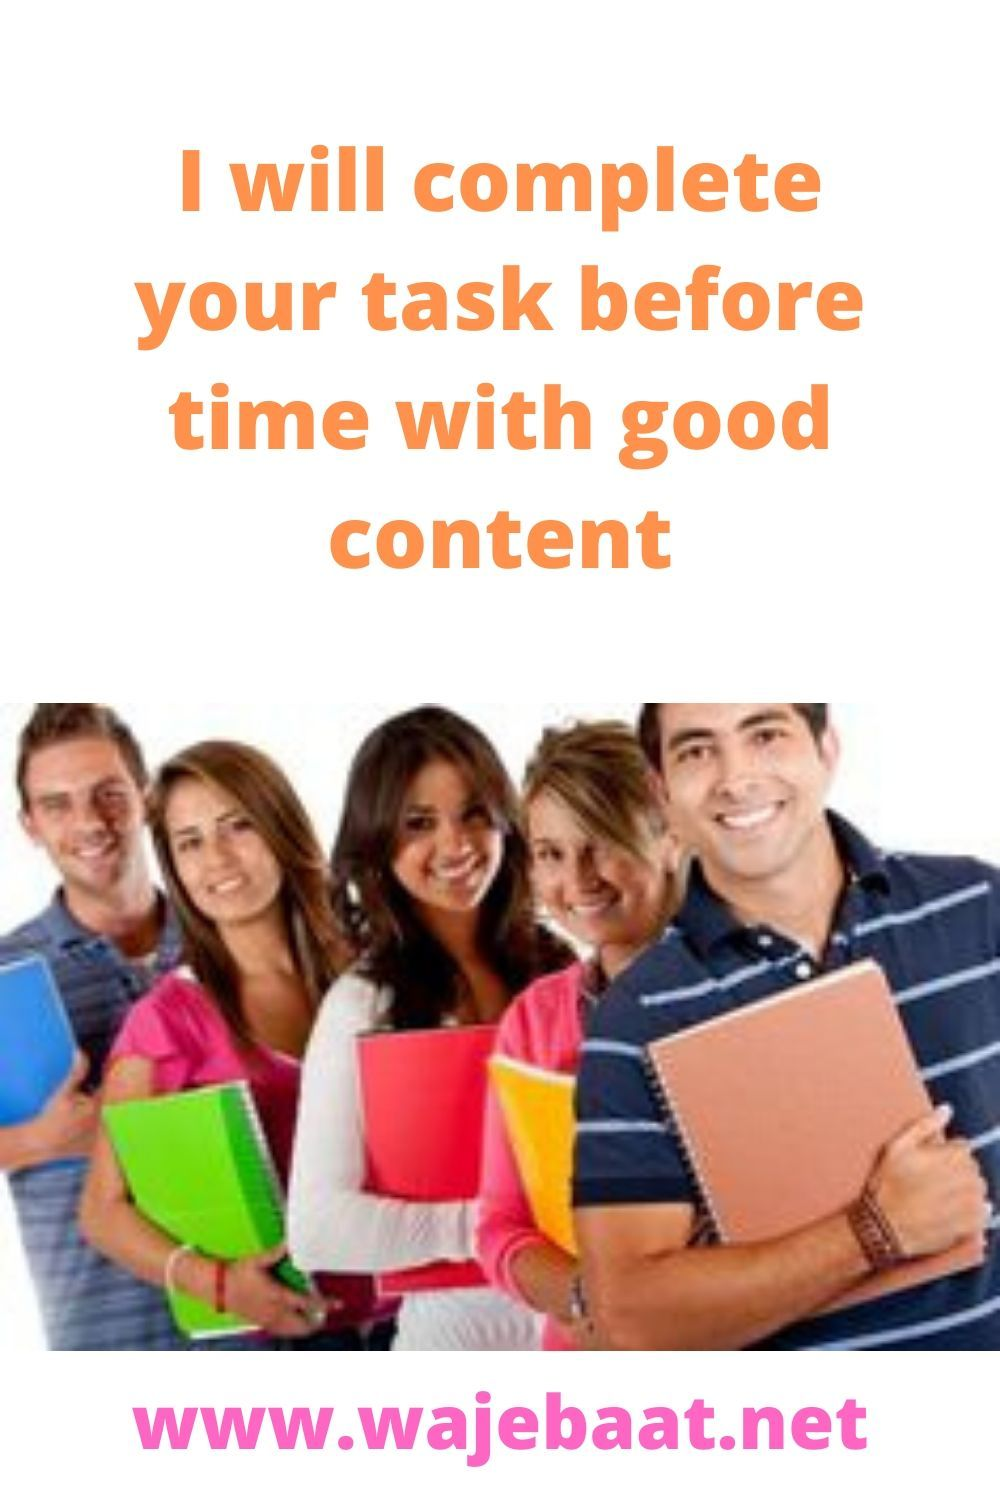 Online Will Writing Services Any Good - Top 11 Online Will Writing Services: Cost Comparison